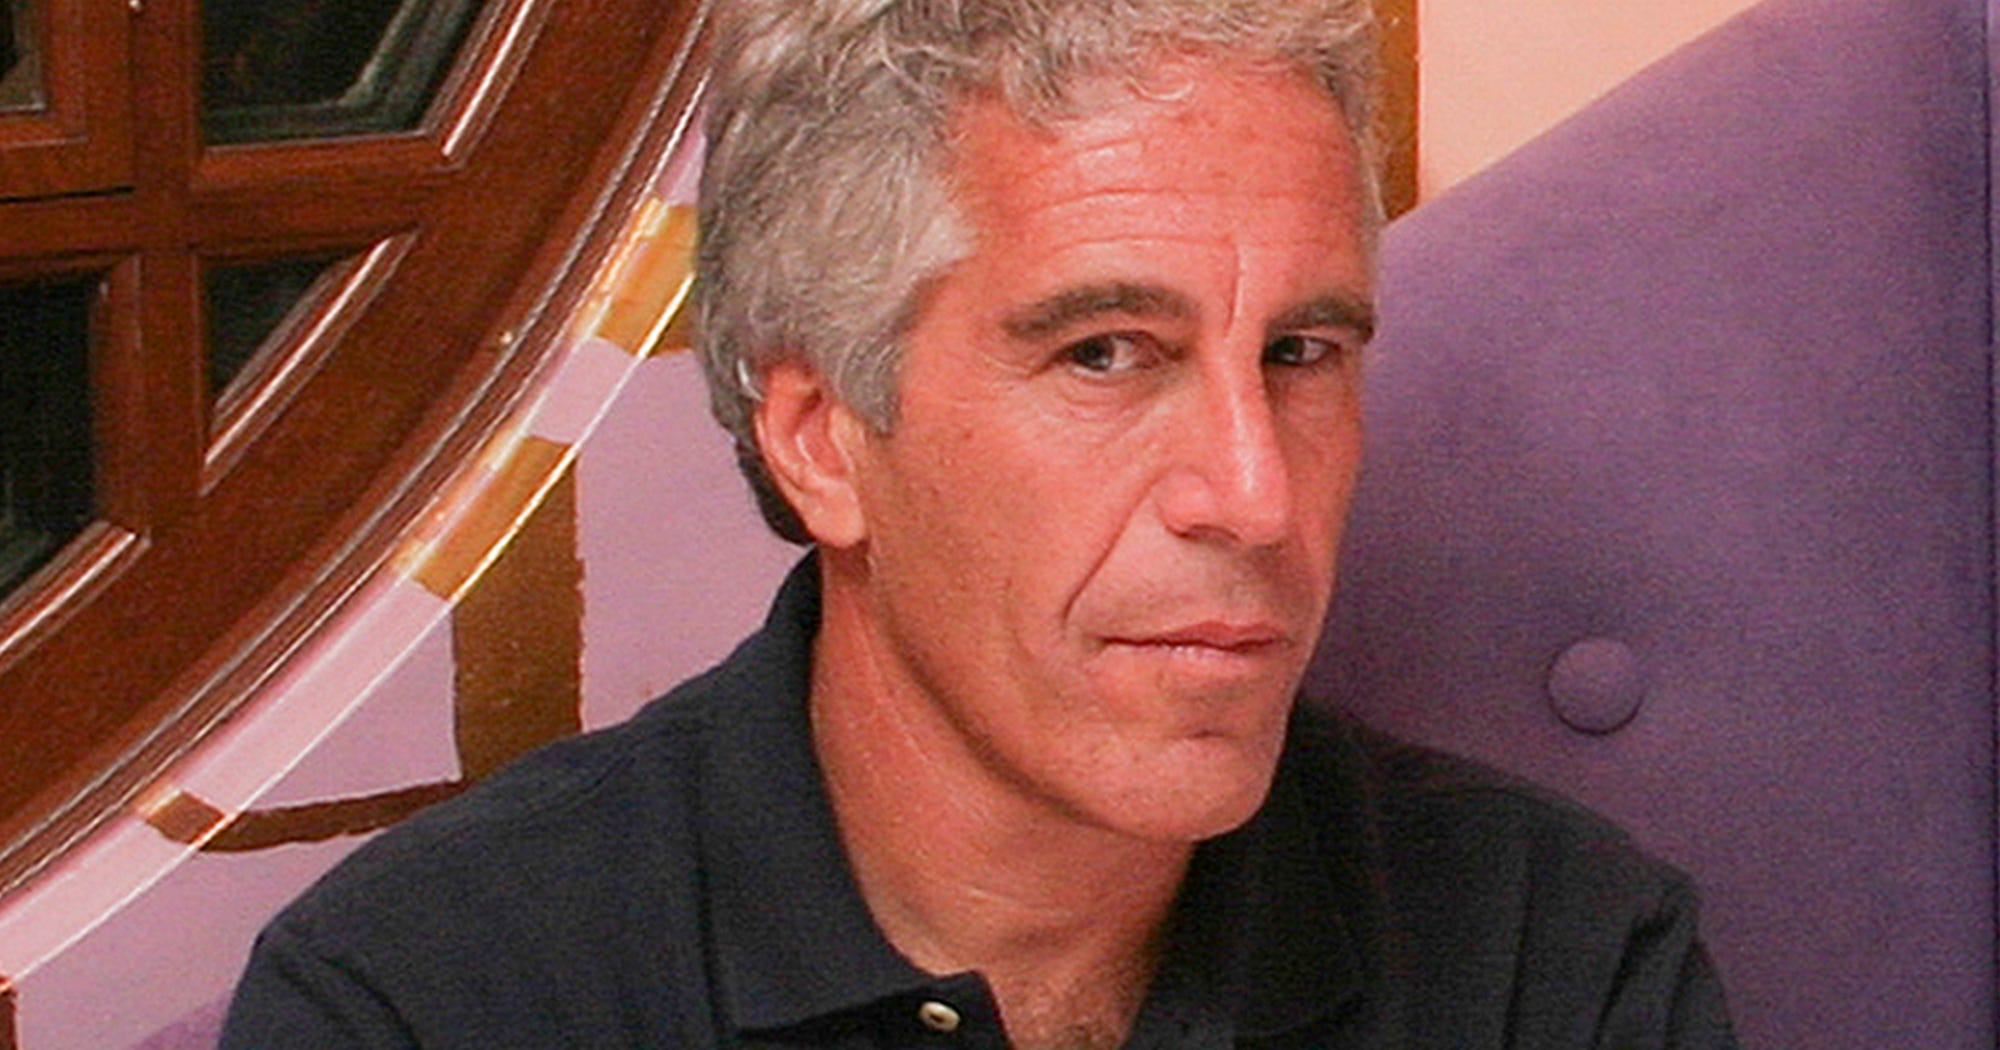 Jeffrey Epstein Documentary Halted Because His Life Was Too Disturbing